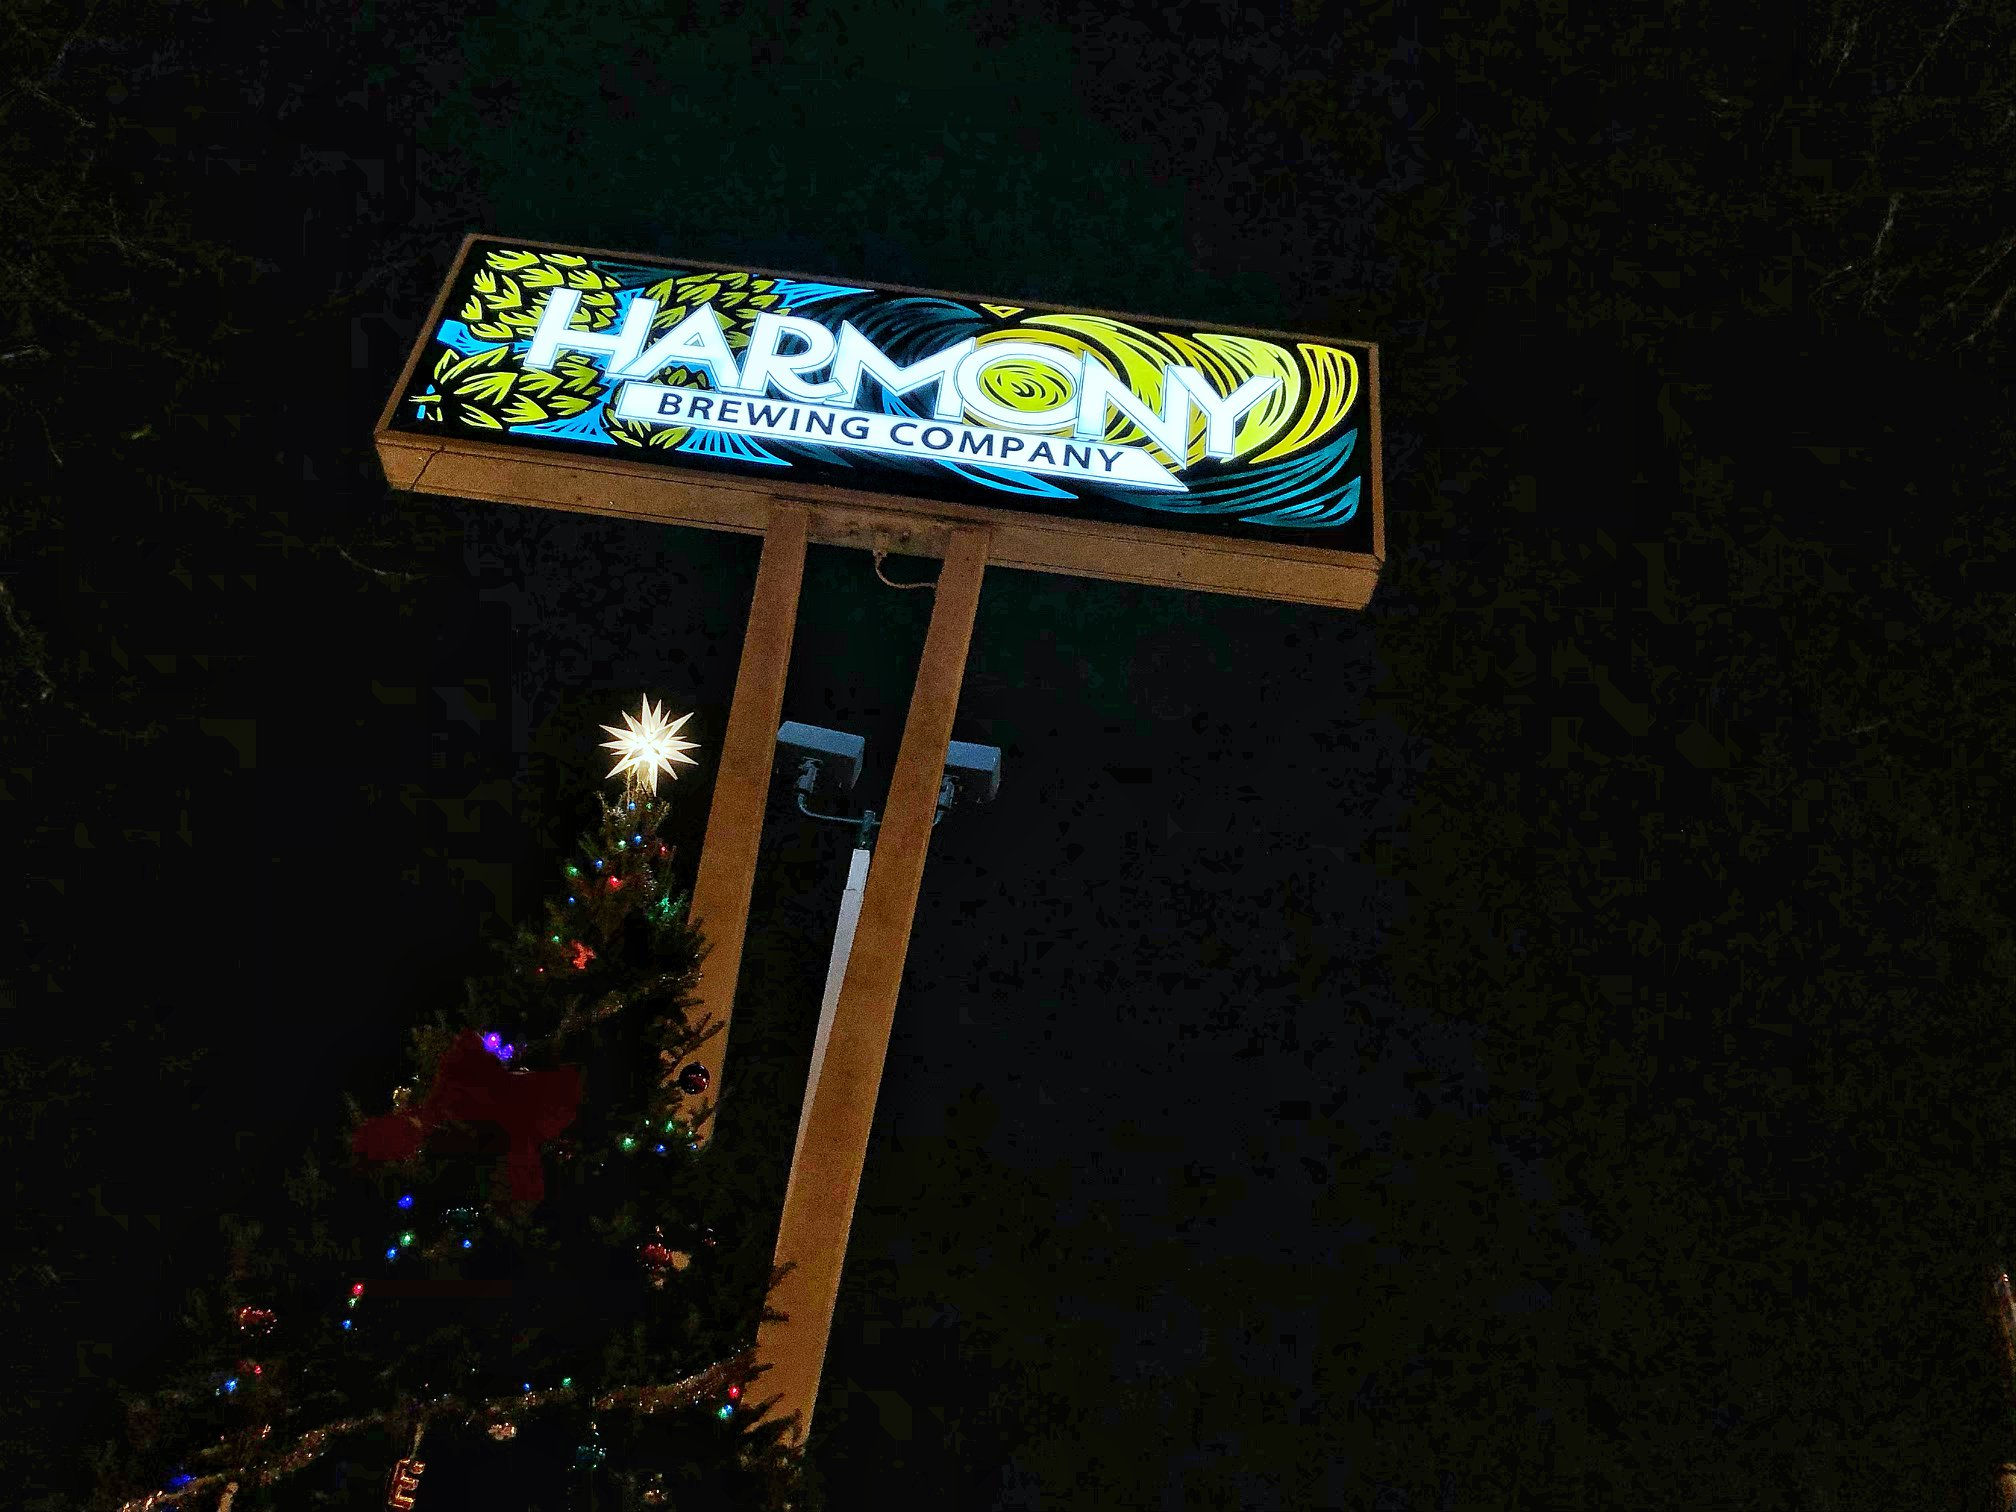 Eastown Tree LIghting Harmony Brewing.jpg